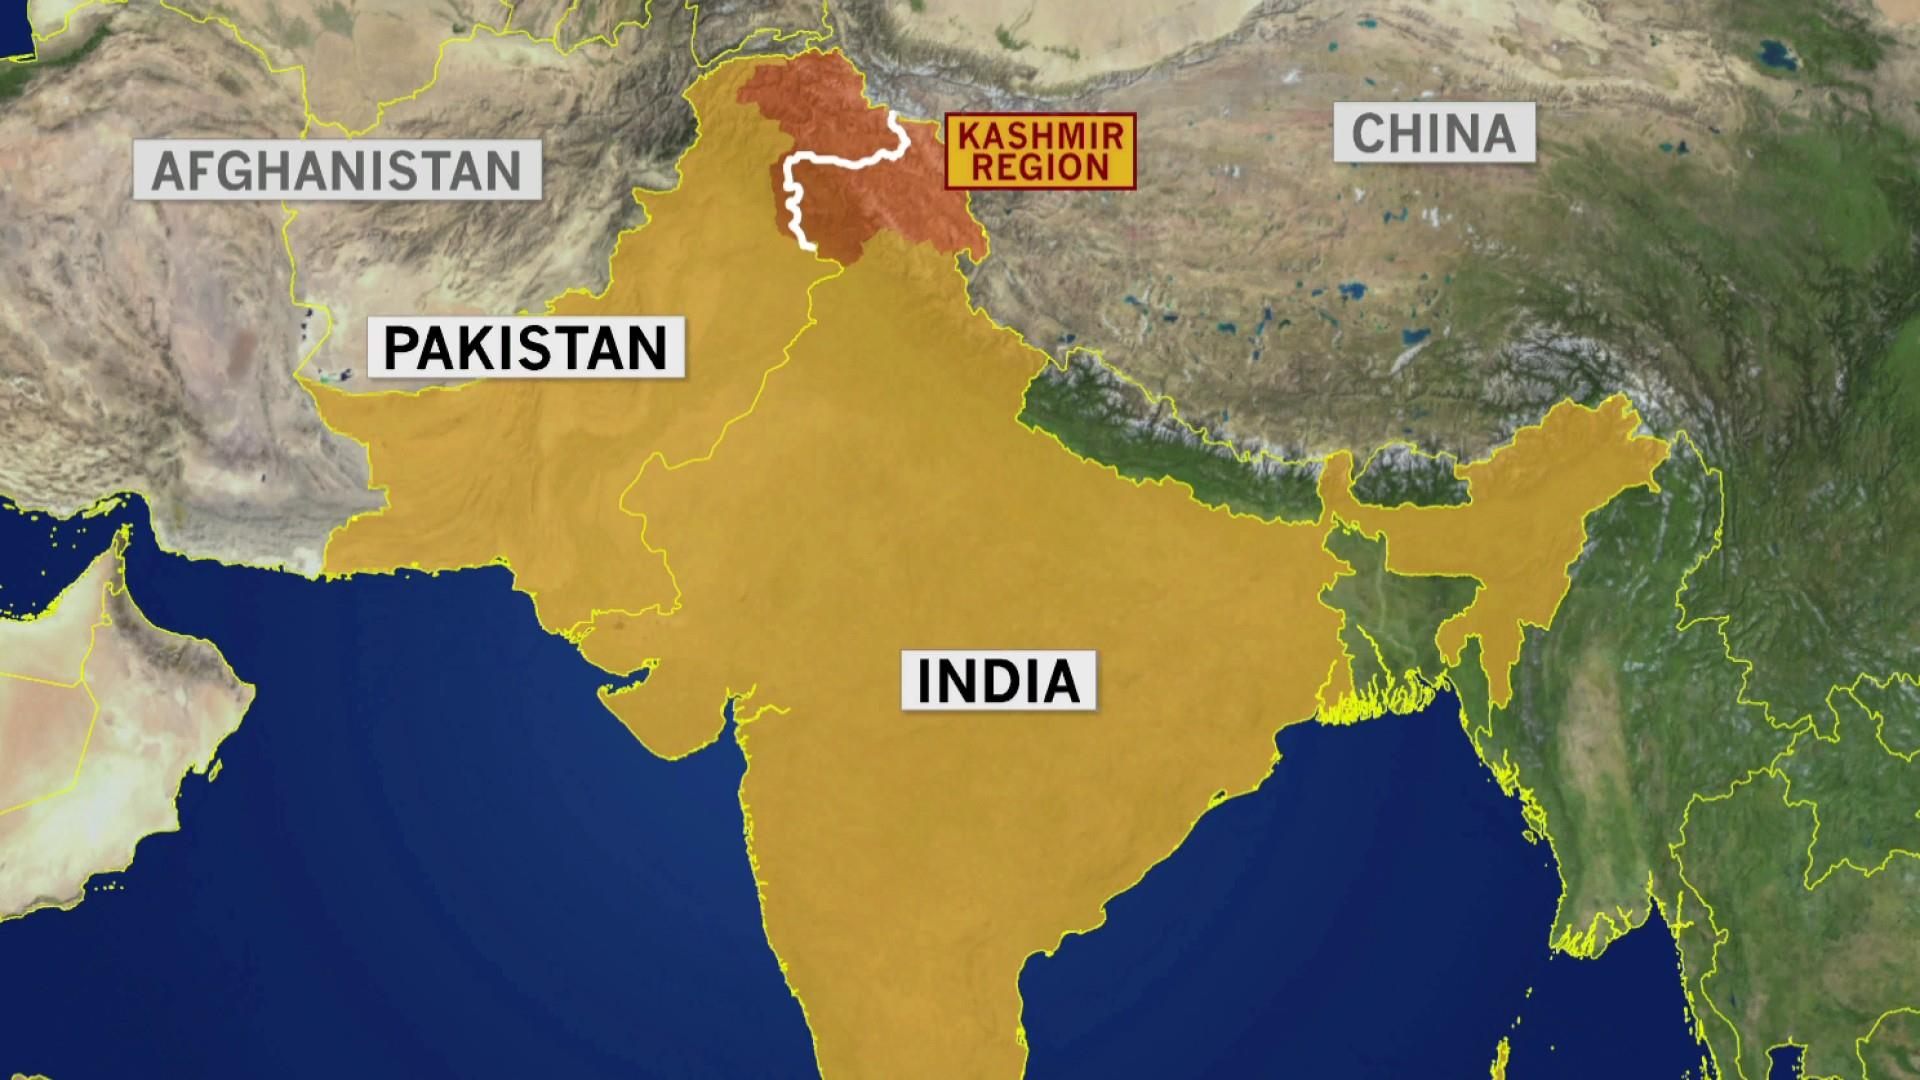 Tensions heat up between India and Pakistan. Here's why that matters.